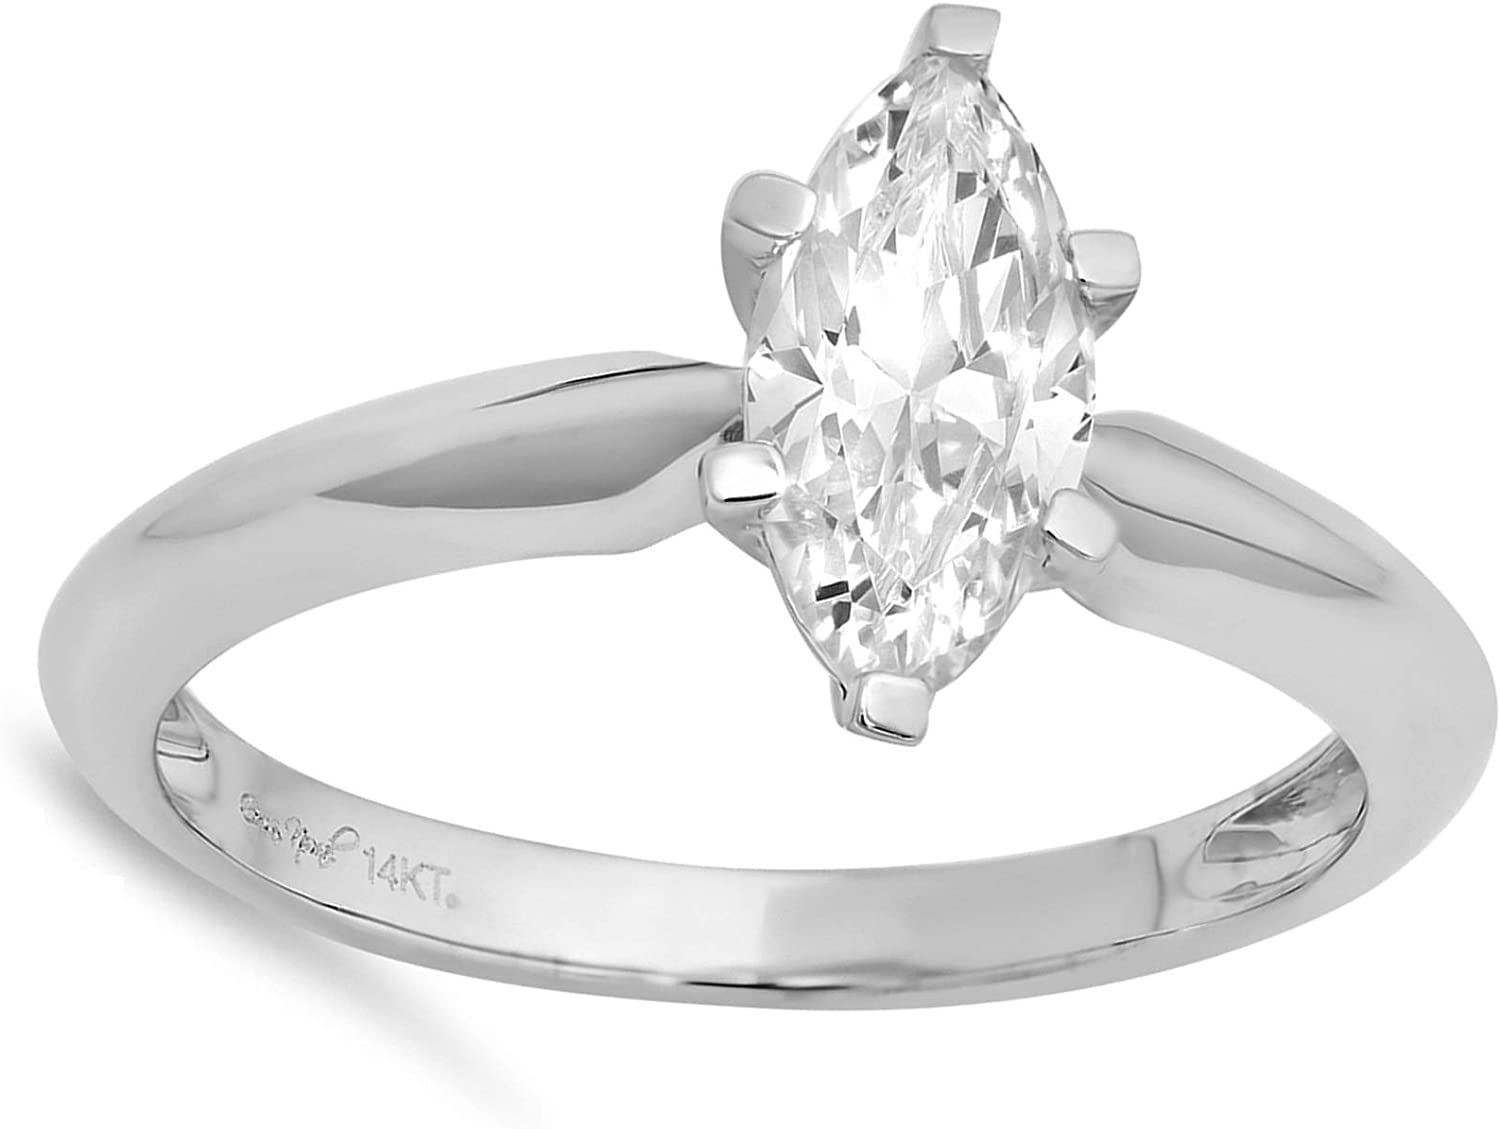 0.9ct Brilliant Marquise Cut Solitaire Stunning Genuine Lab Created White Sapphire Ideal VVS1 D 6-Prong Engagement Wedding Bridal Promise Anniversary Ring Solid 14k White Gold for Women